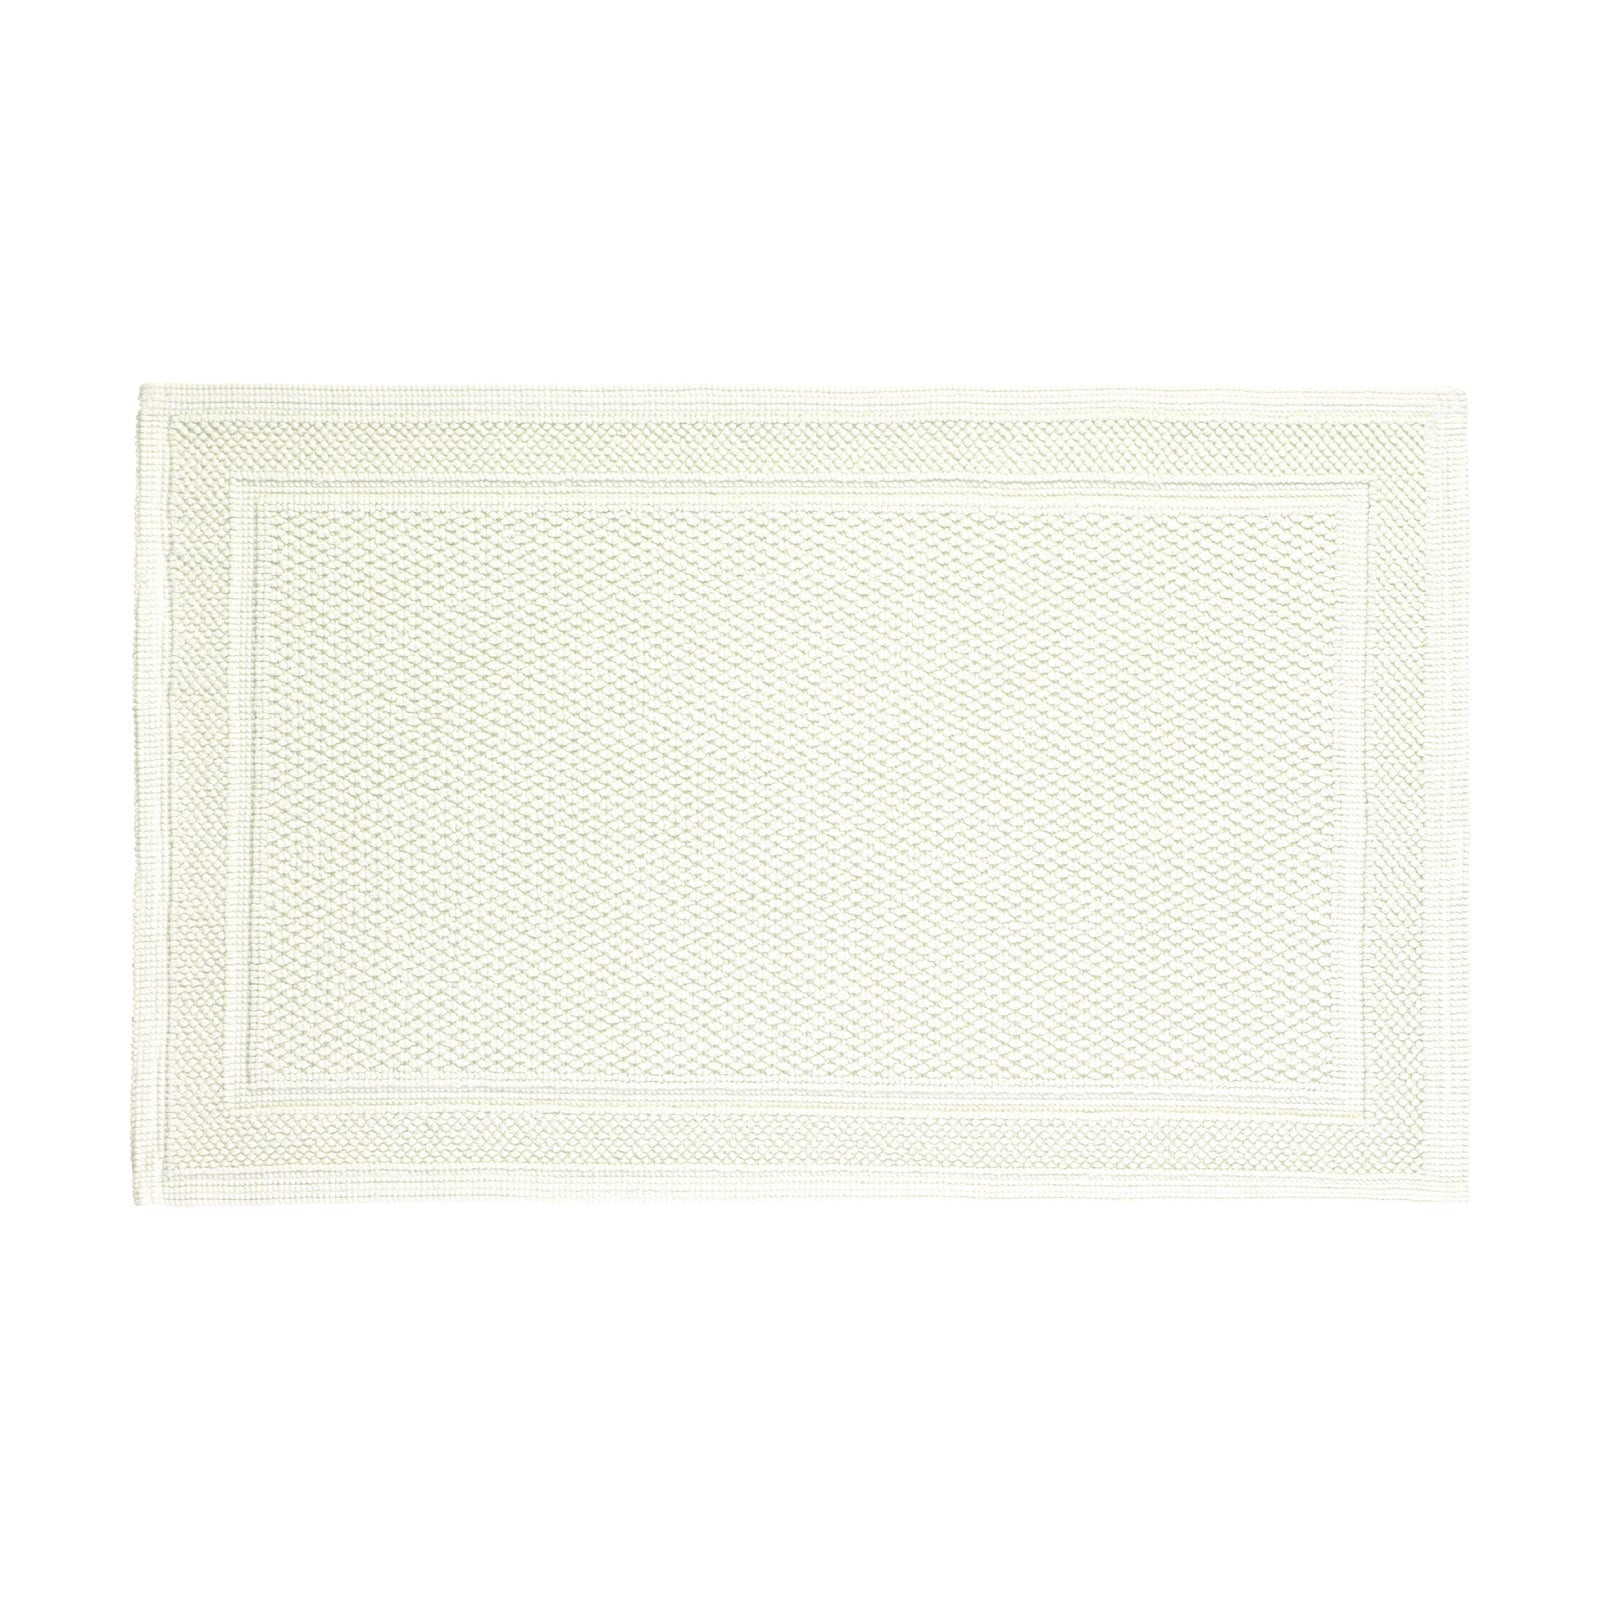 Cotton Bath Rug in Ivory